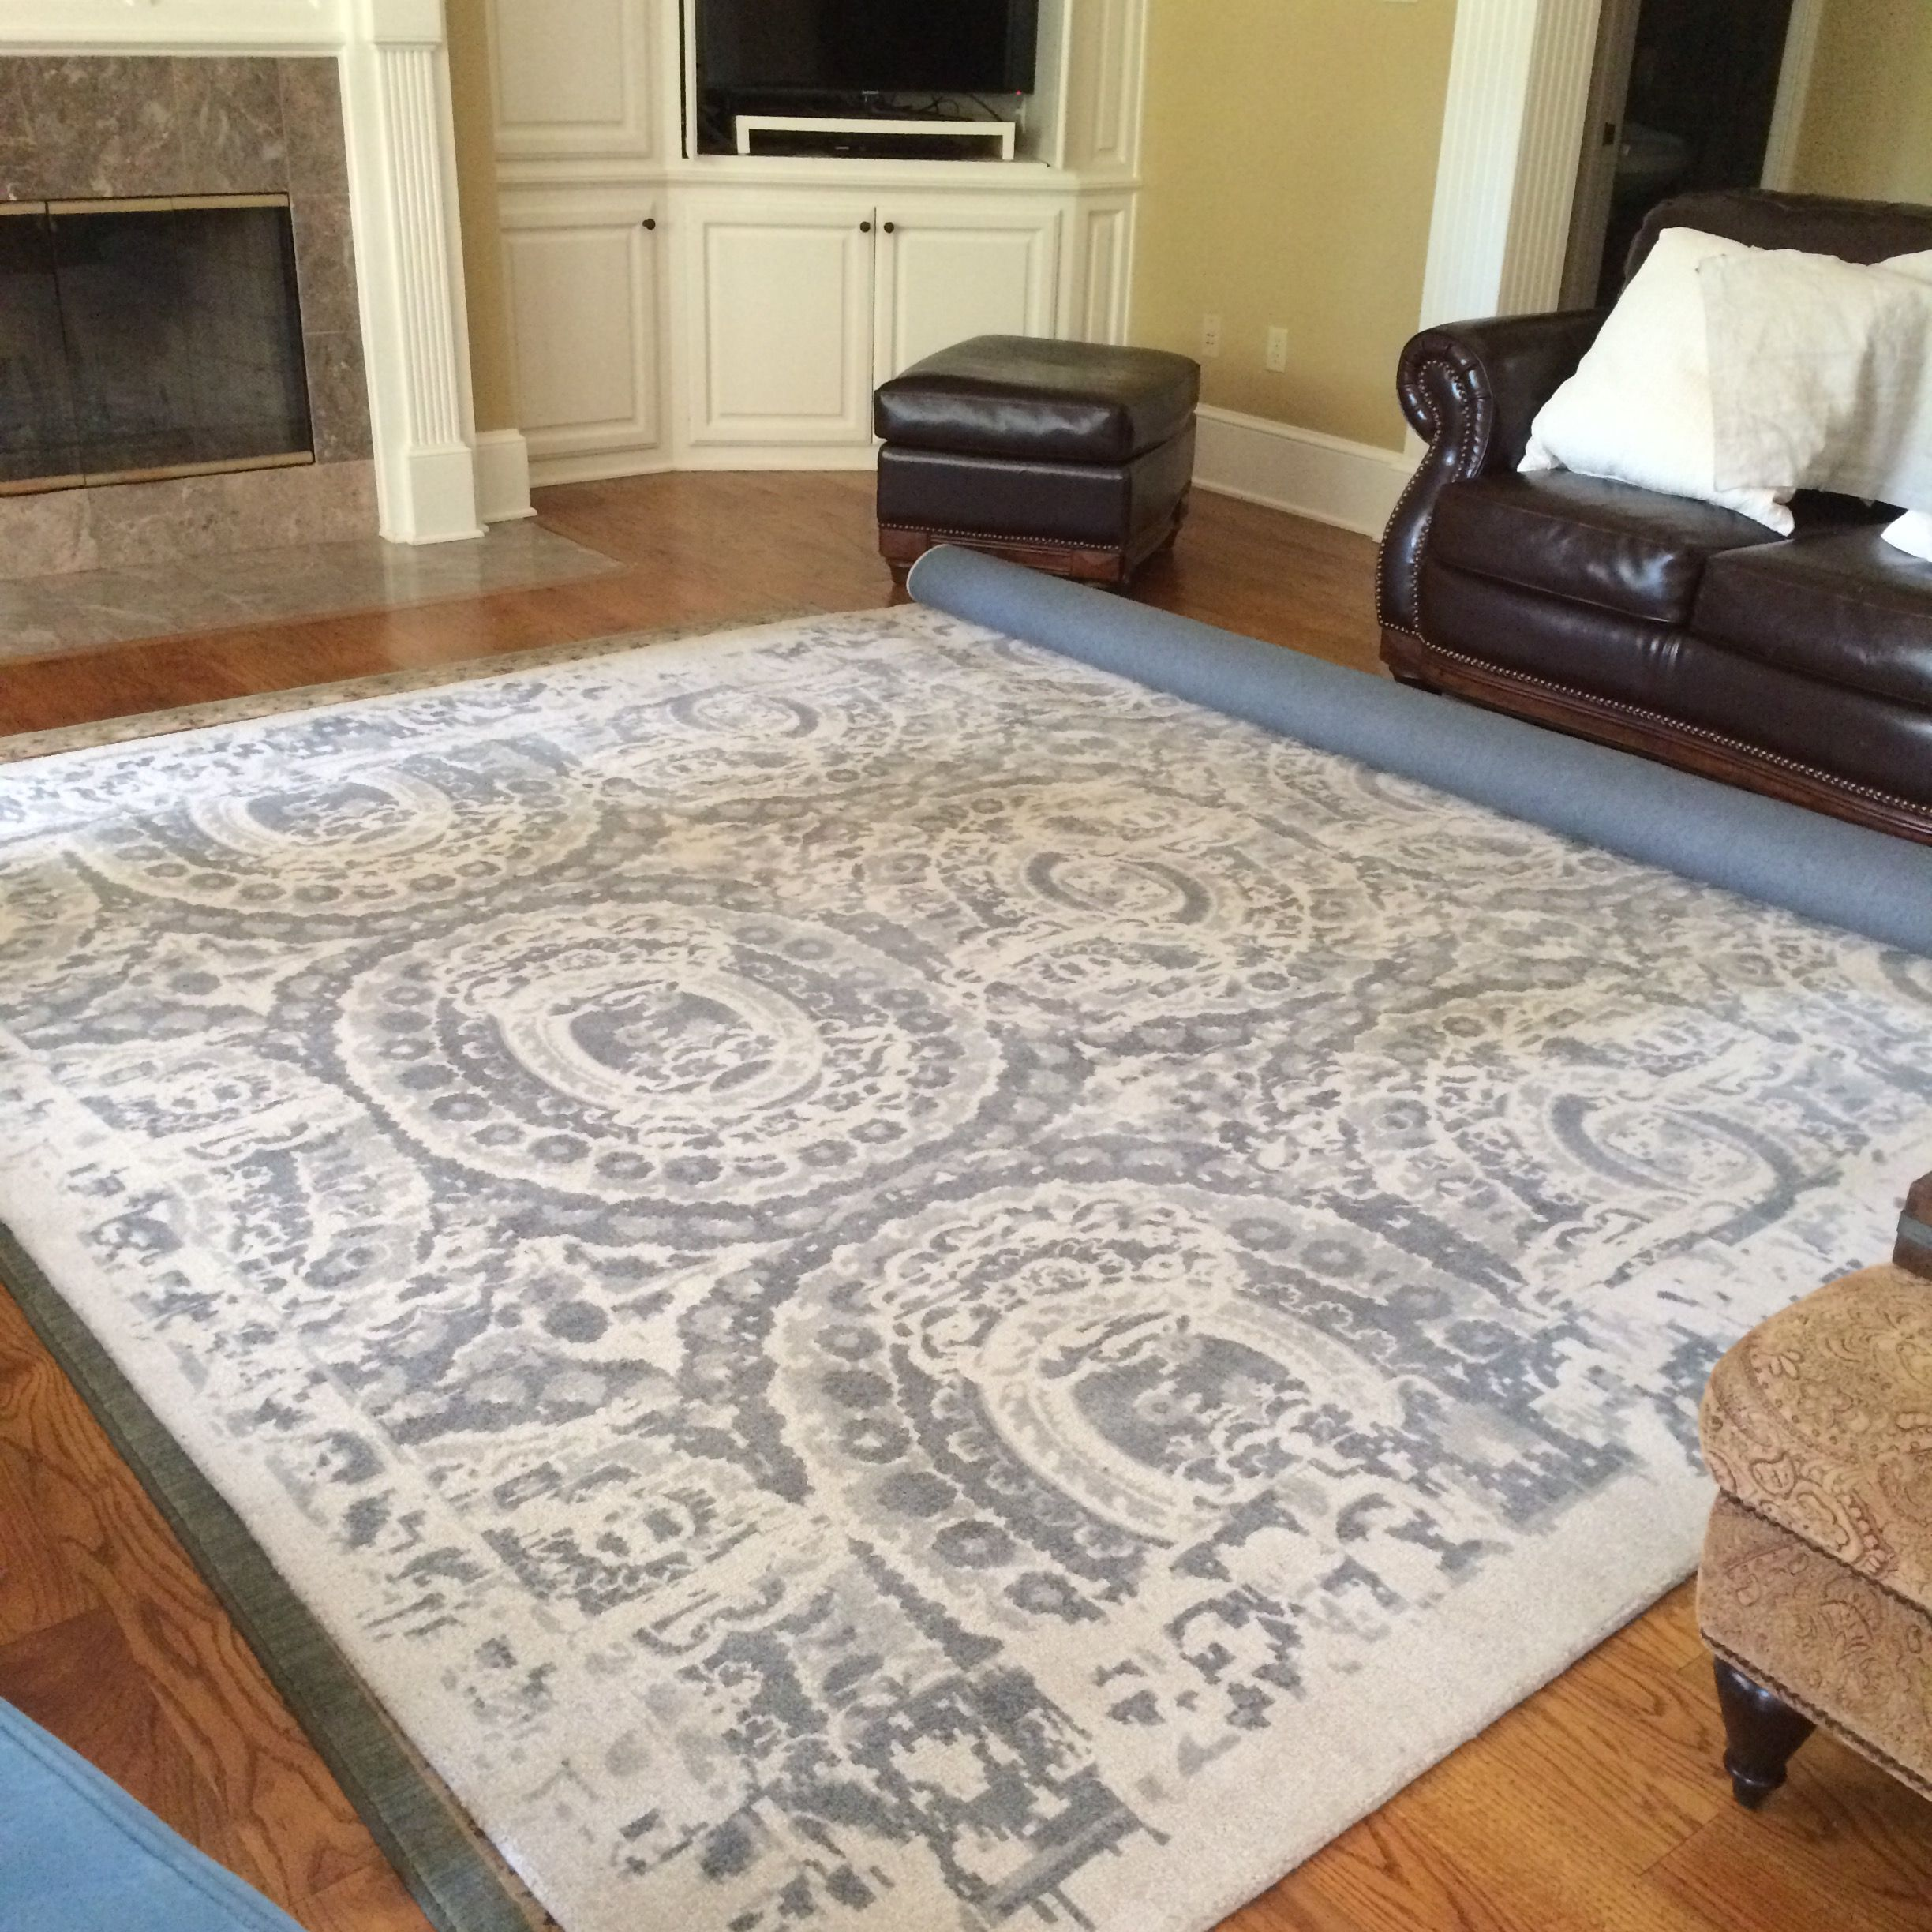 Pottery Barn Bosworth Rug Inexpensive Rugs Rugs In Living Room Rugs